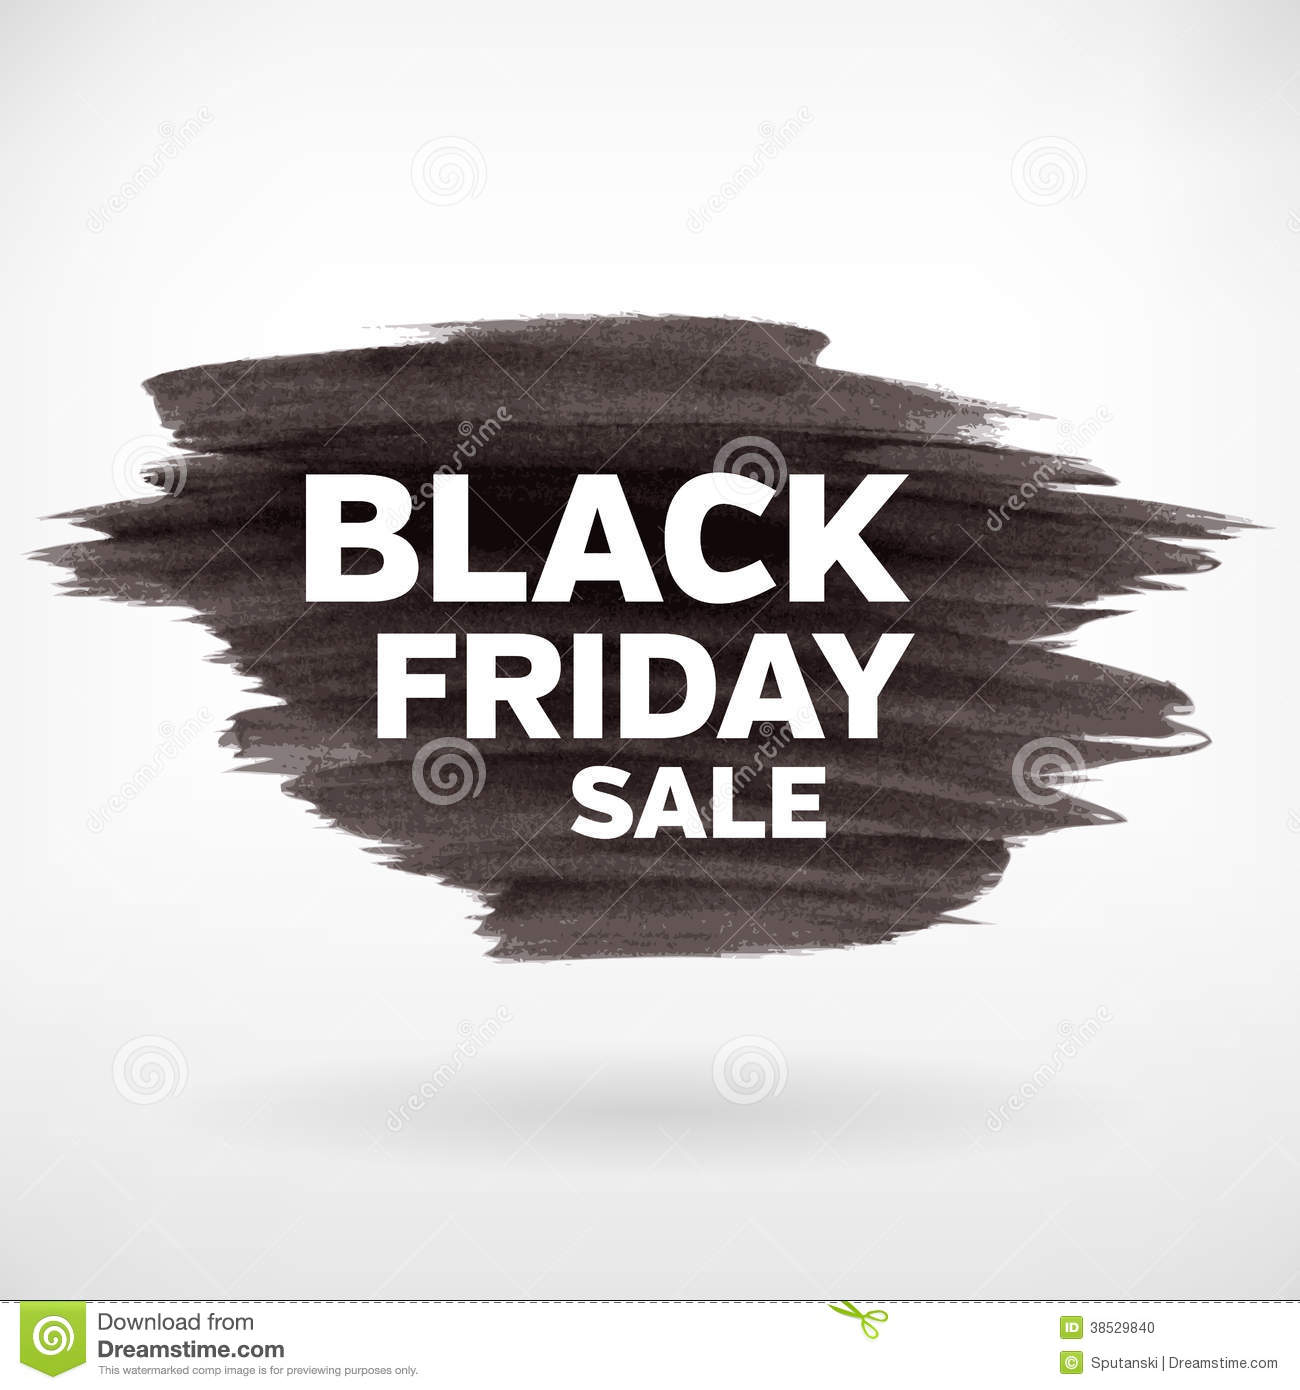 Black Friday Sale -364990